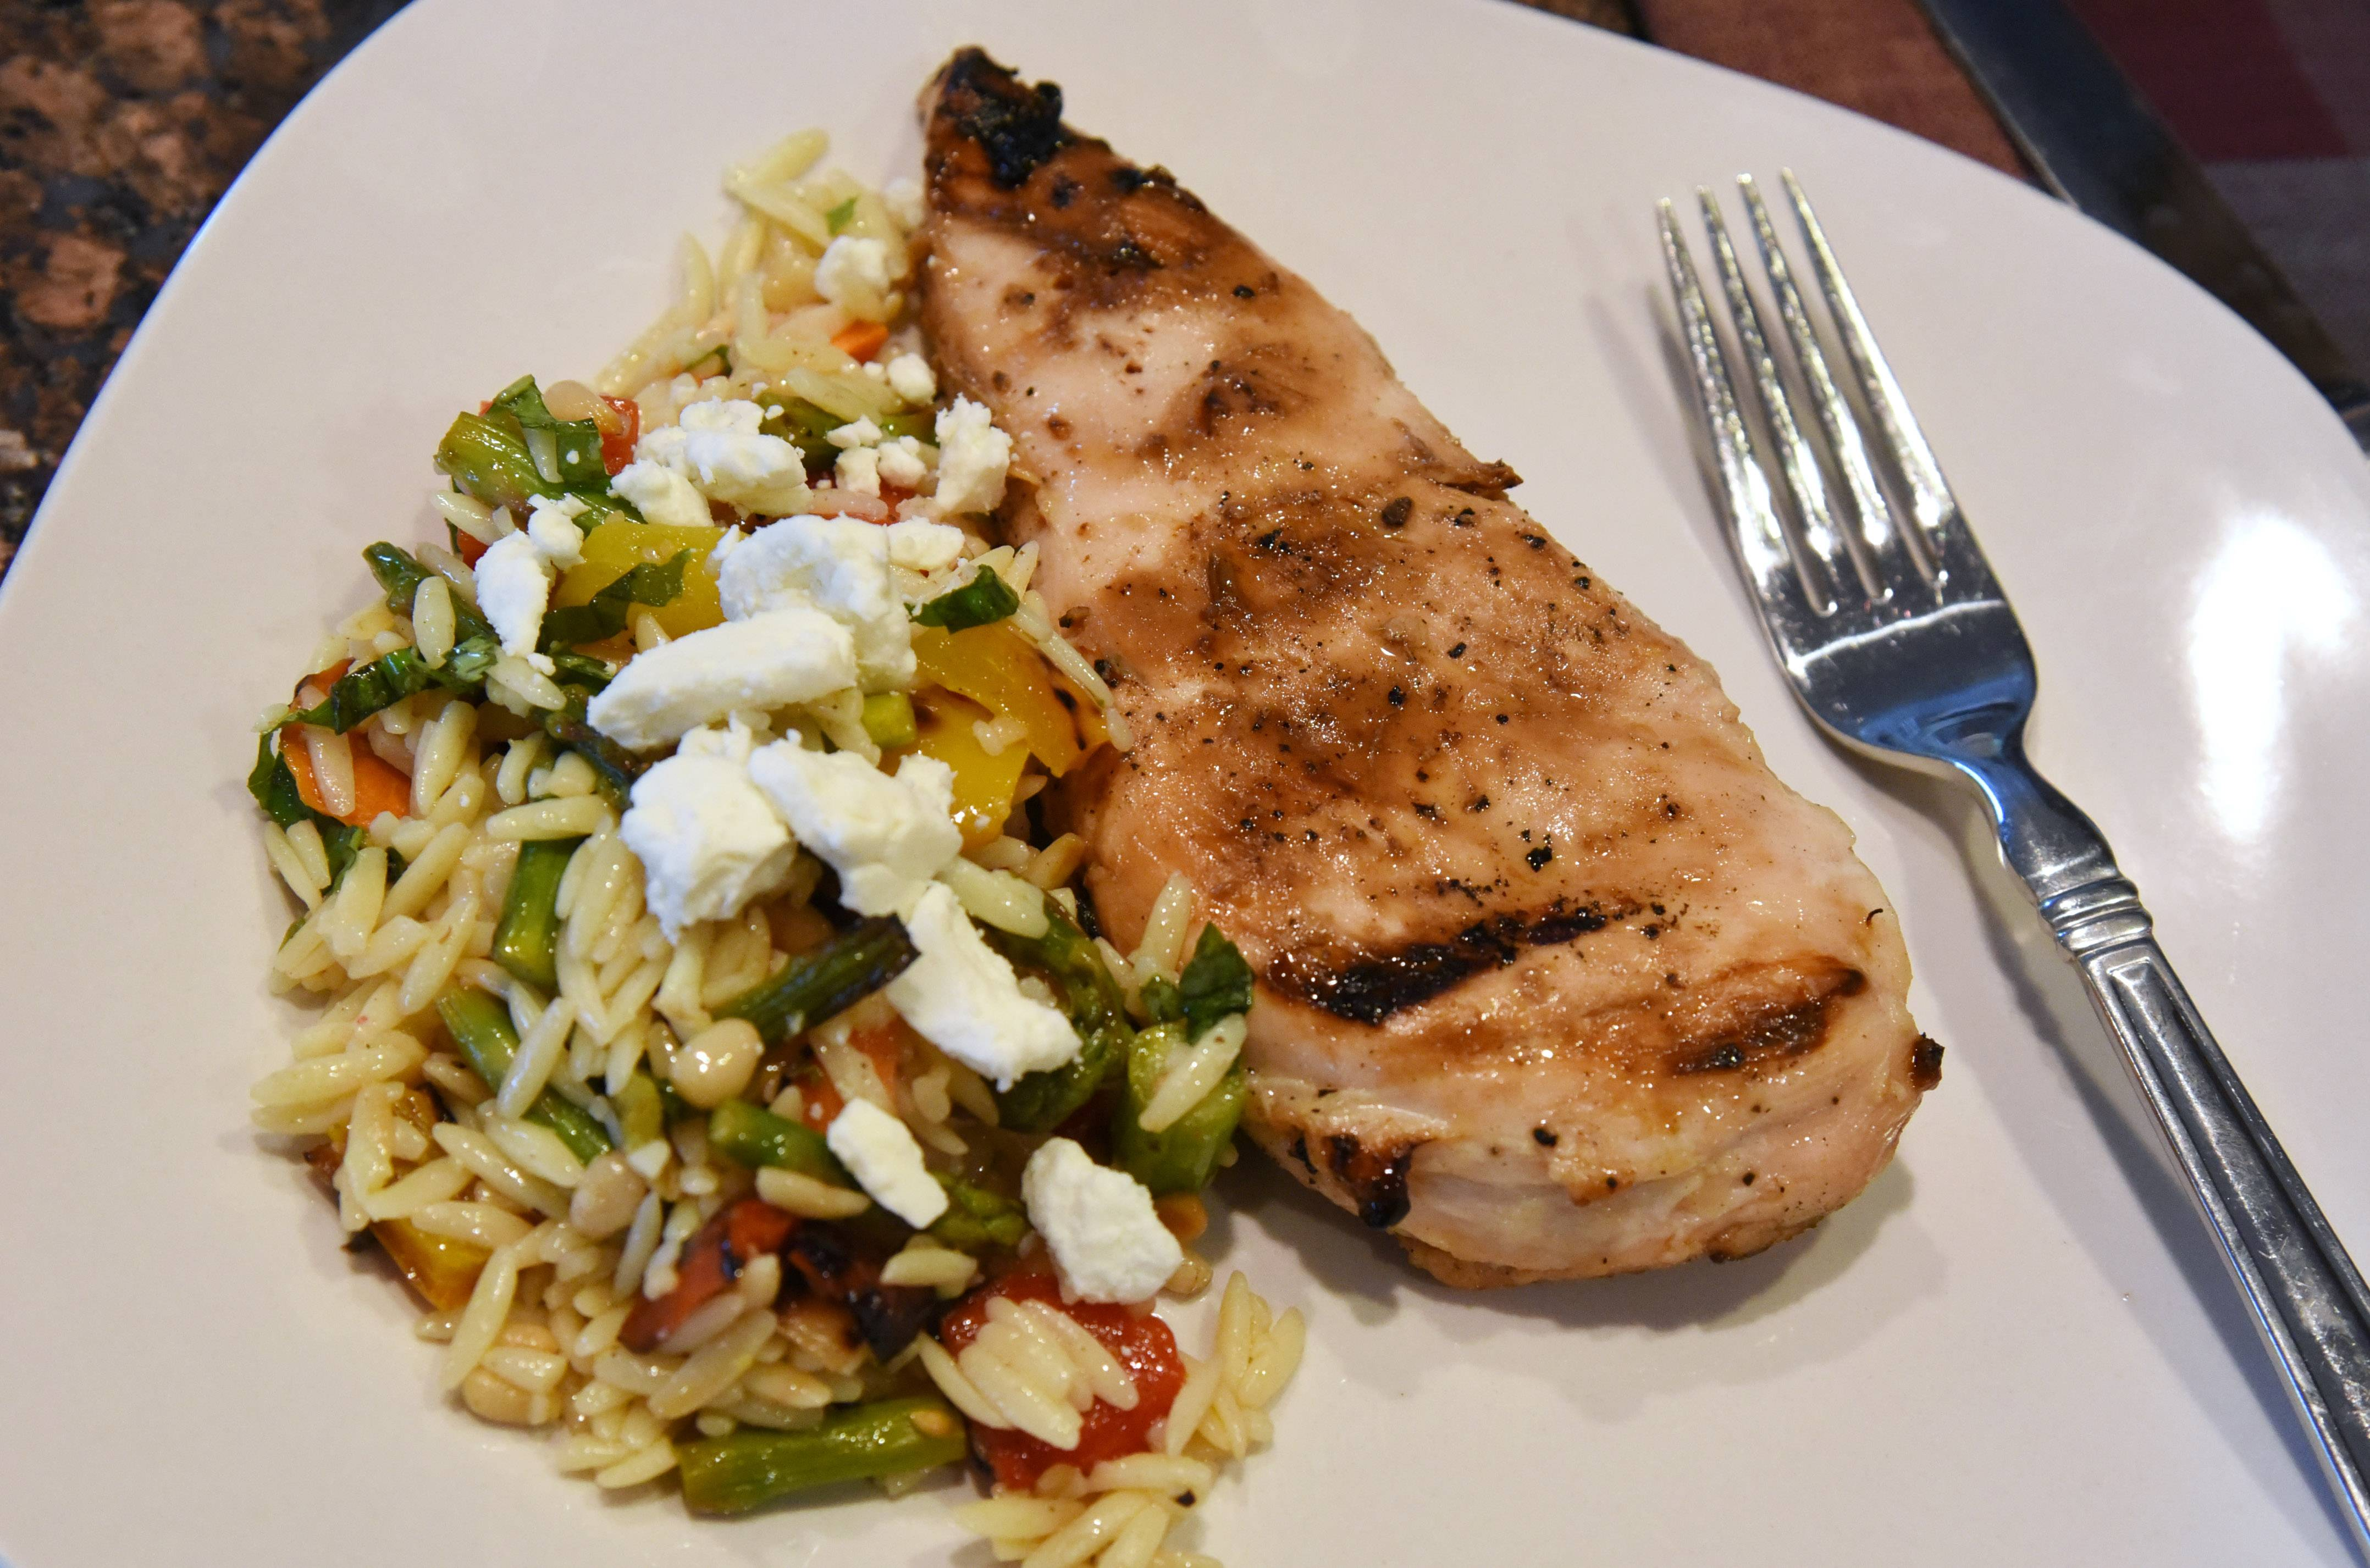 Grilled vegetable and orzo salad alongside Graduation Party Chicken made by Lake Zurich Cook of the Week Kim Schroeder.